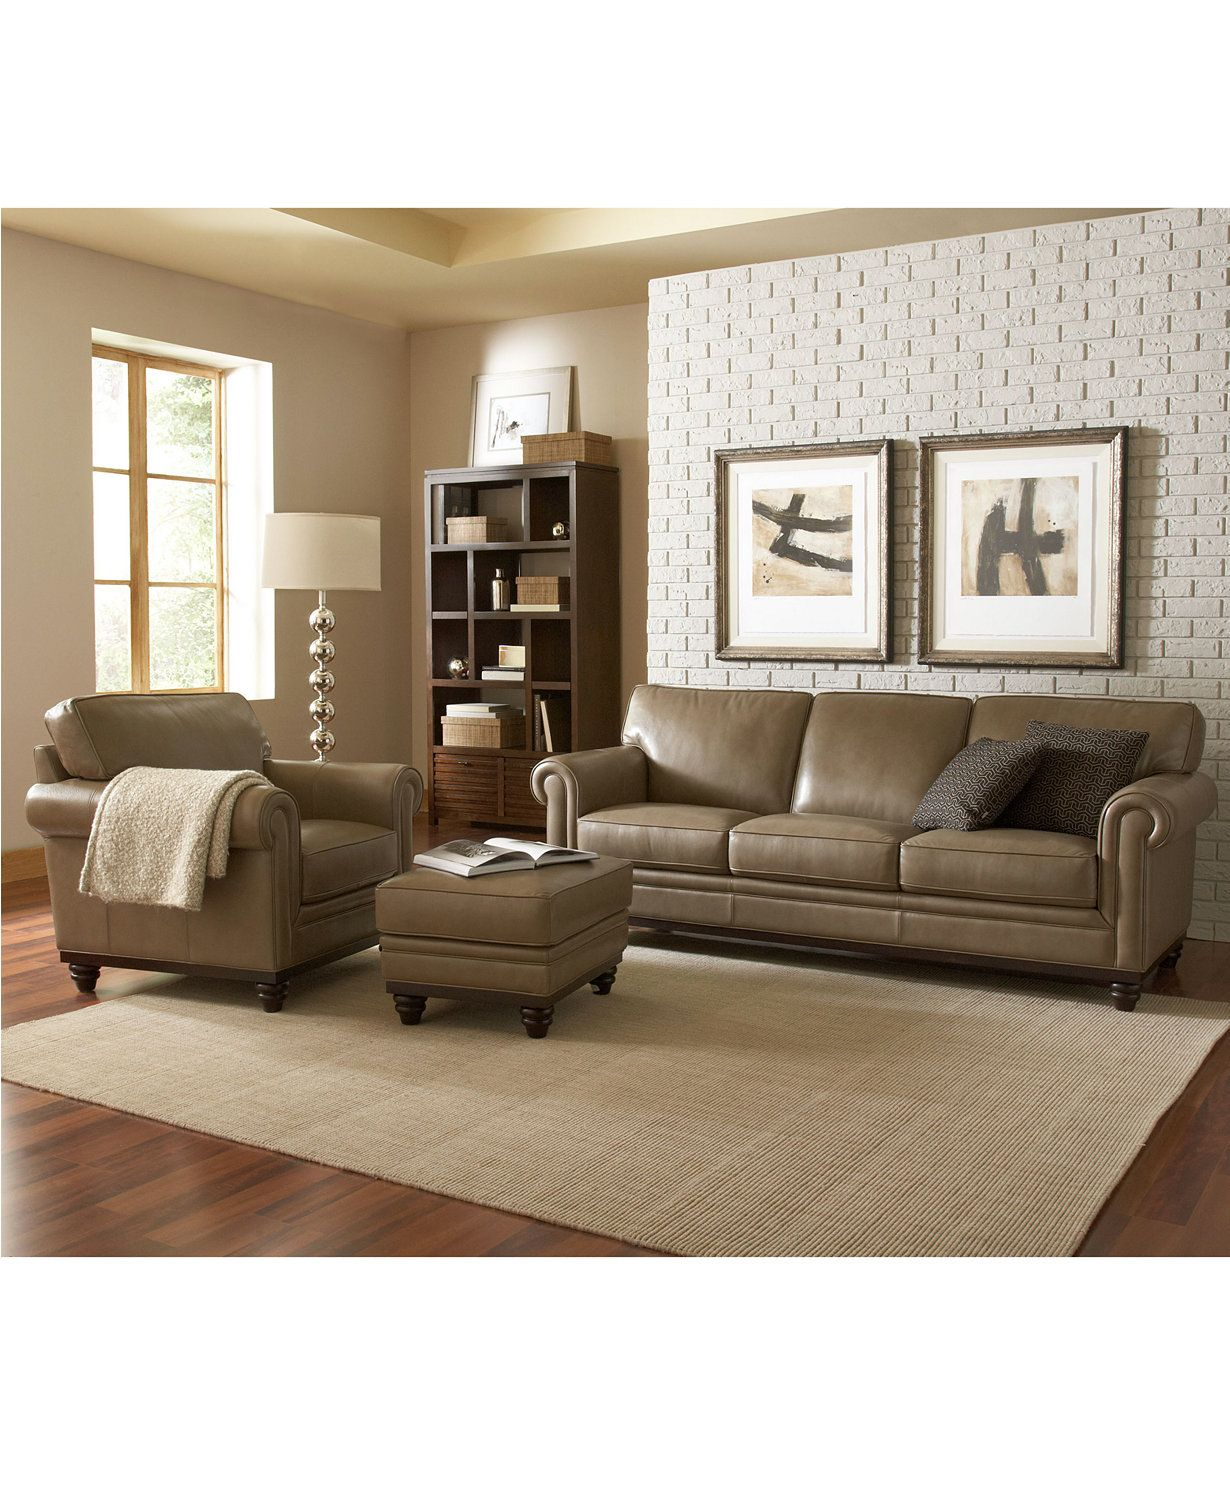 Leather Furniture Traveler Collection: Bradyn Leather Sofa Collection, Created For Macy's